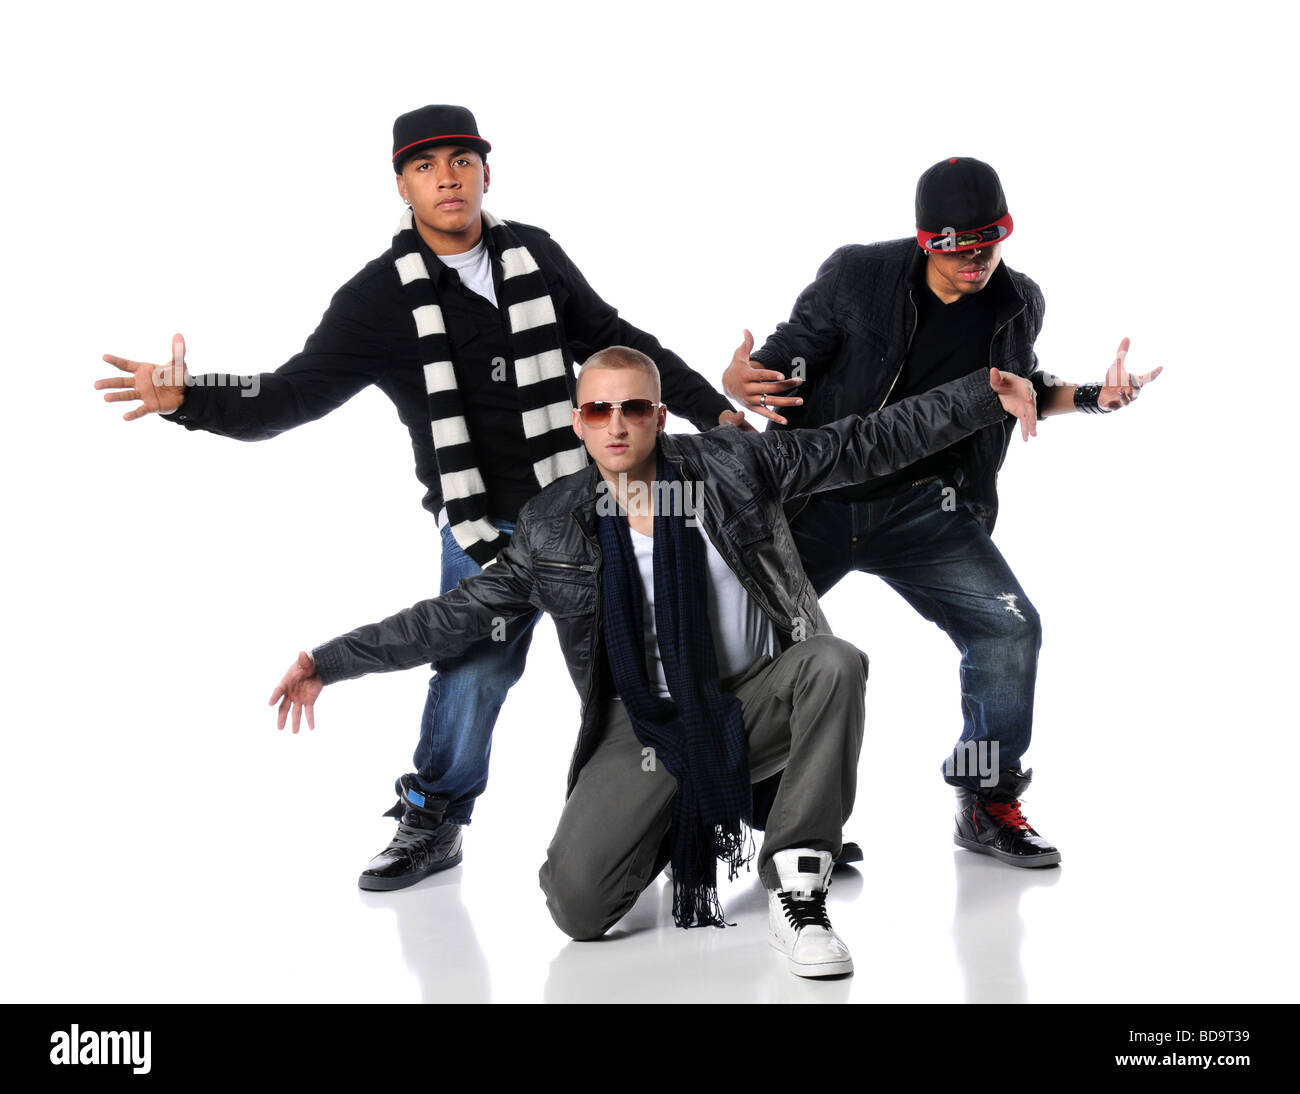 0a1dfaeb3 Hip Hop style men dancing over a white background - Stock Image